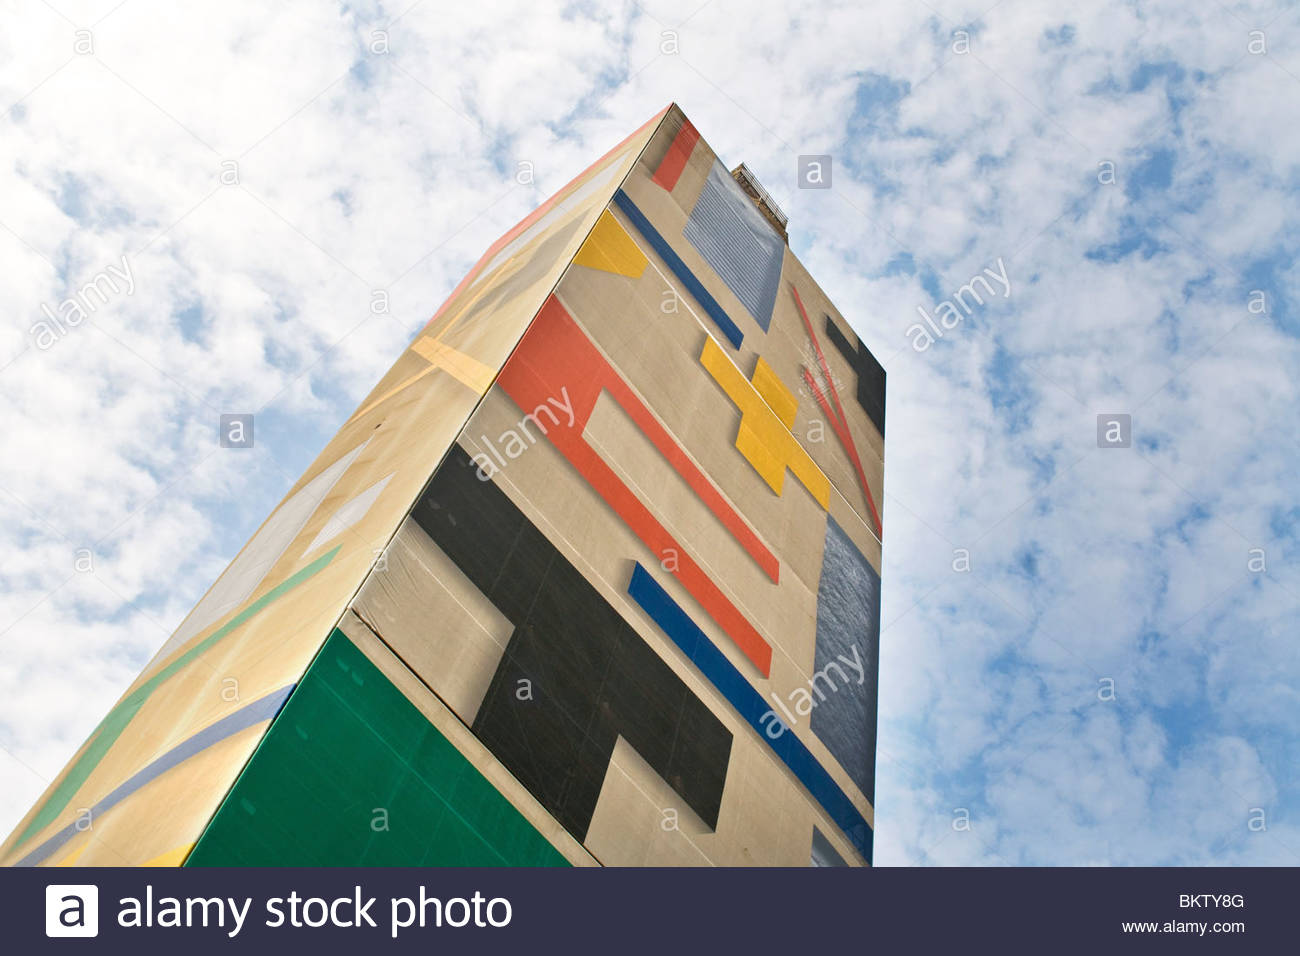 restoration of the Ghirlandina tower,scaffolding covered by a work by Mimmo Paladino,Modena,Emilia Romagna,Italy - Stock Image